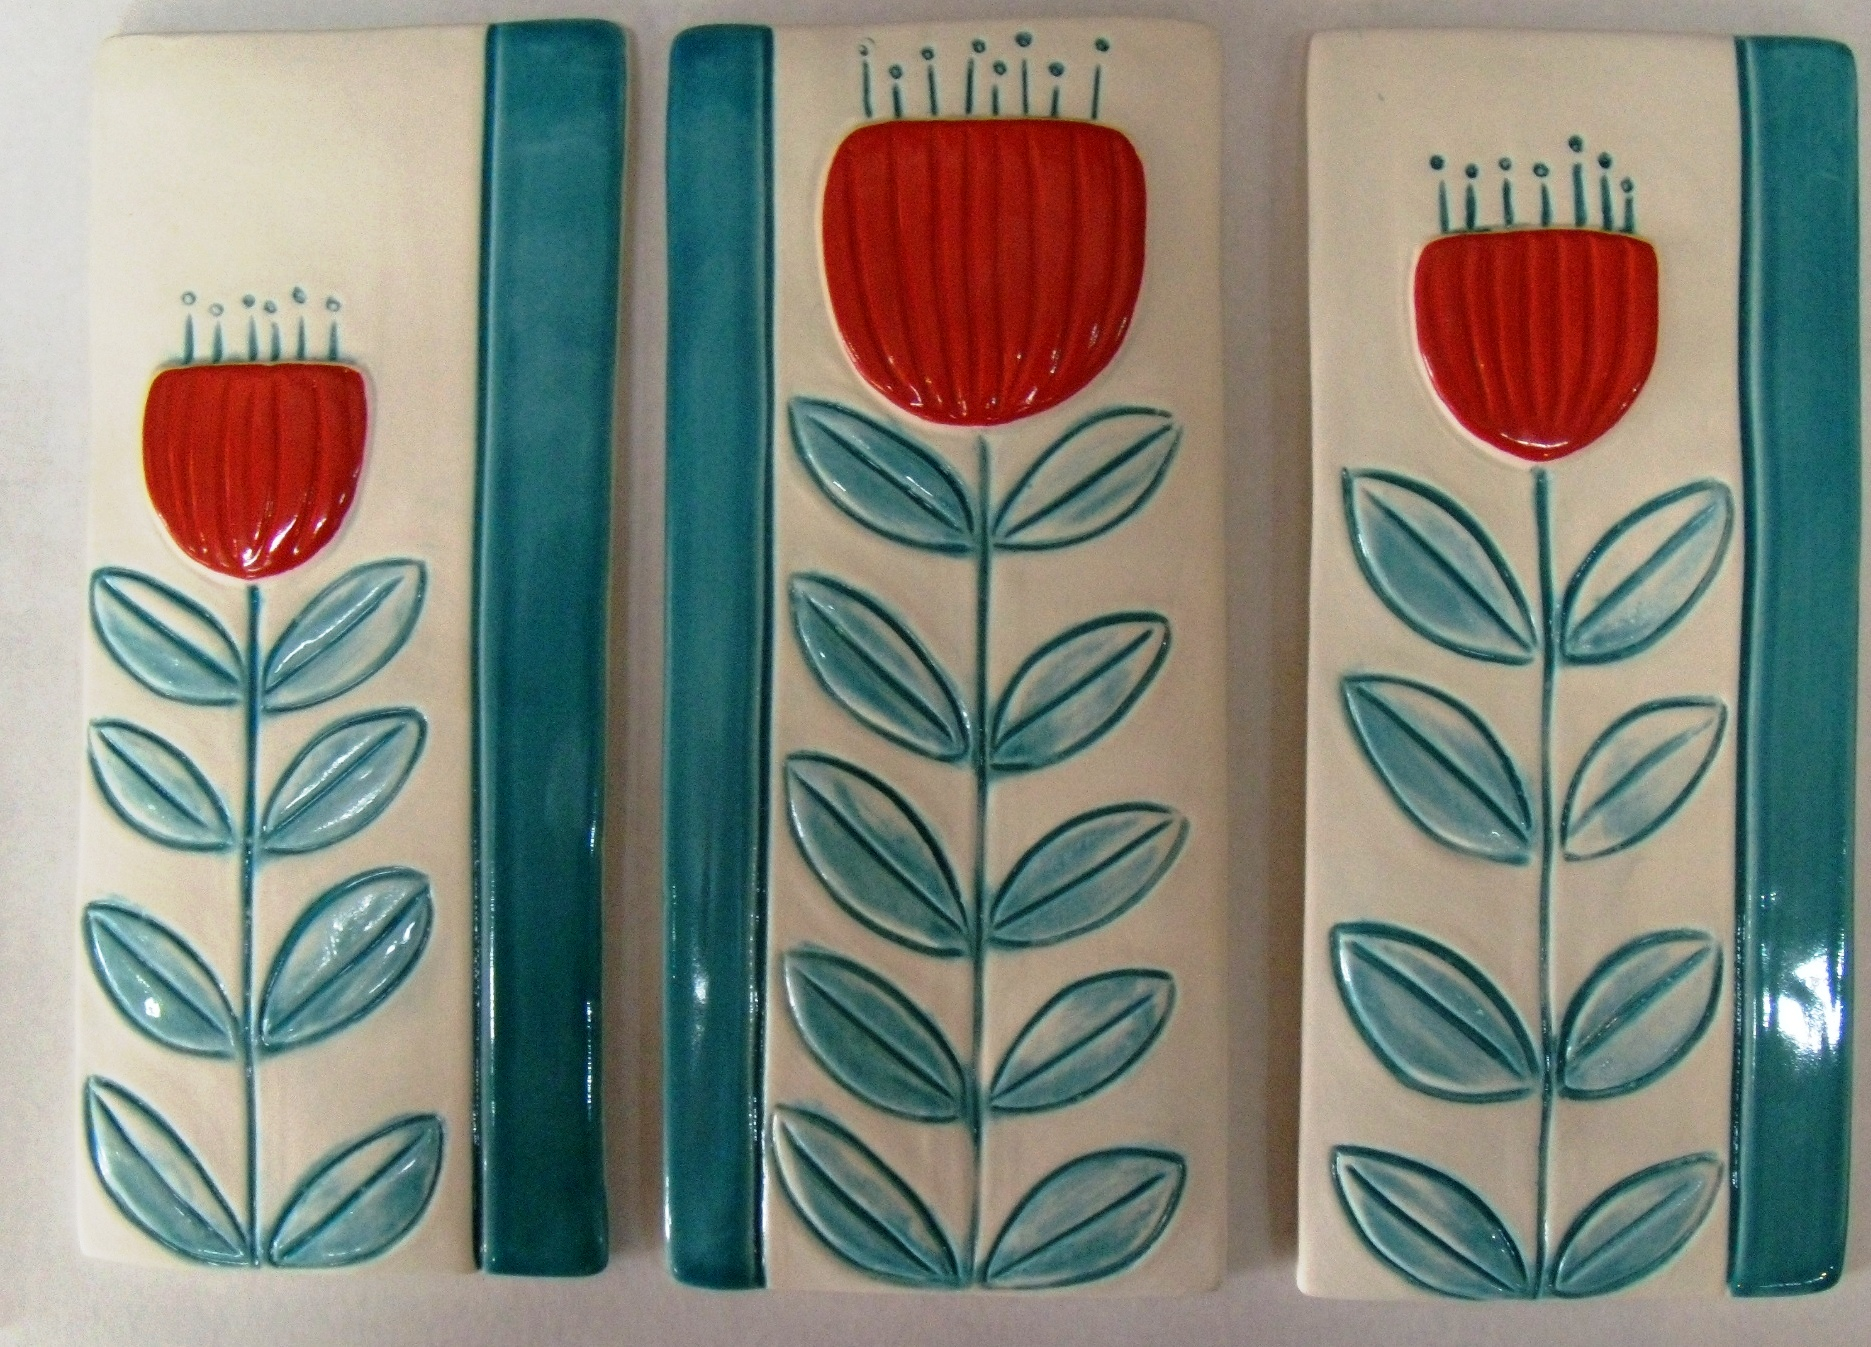 Pohutukawa tiles $99 White with turquoise and orange decoation. Each tile measures 100mm w x 230mm h. Comes boxed.